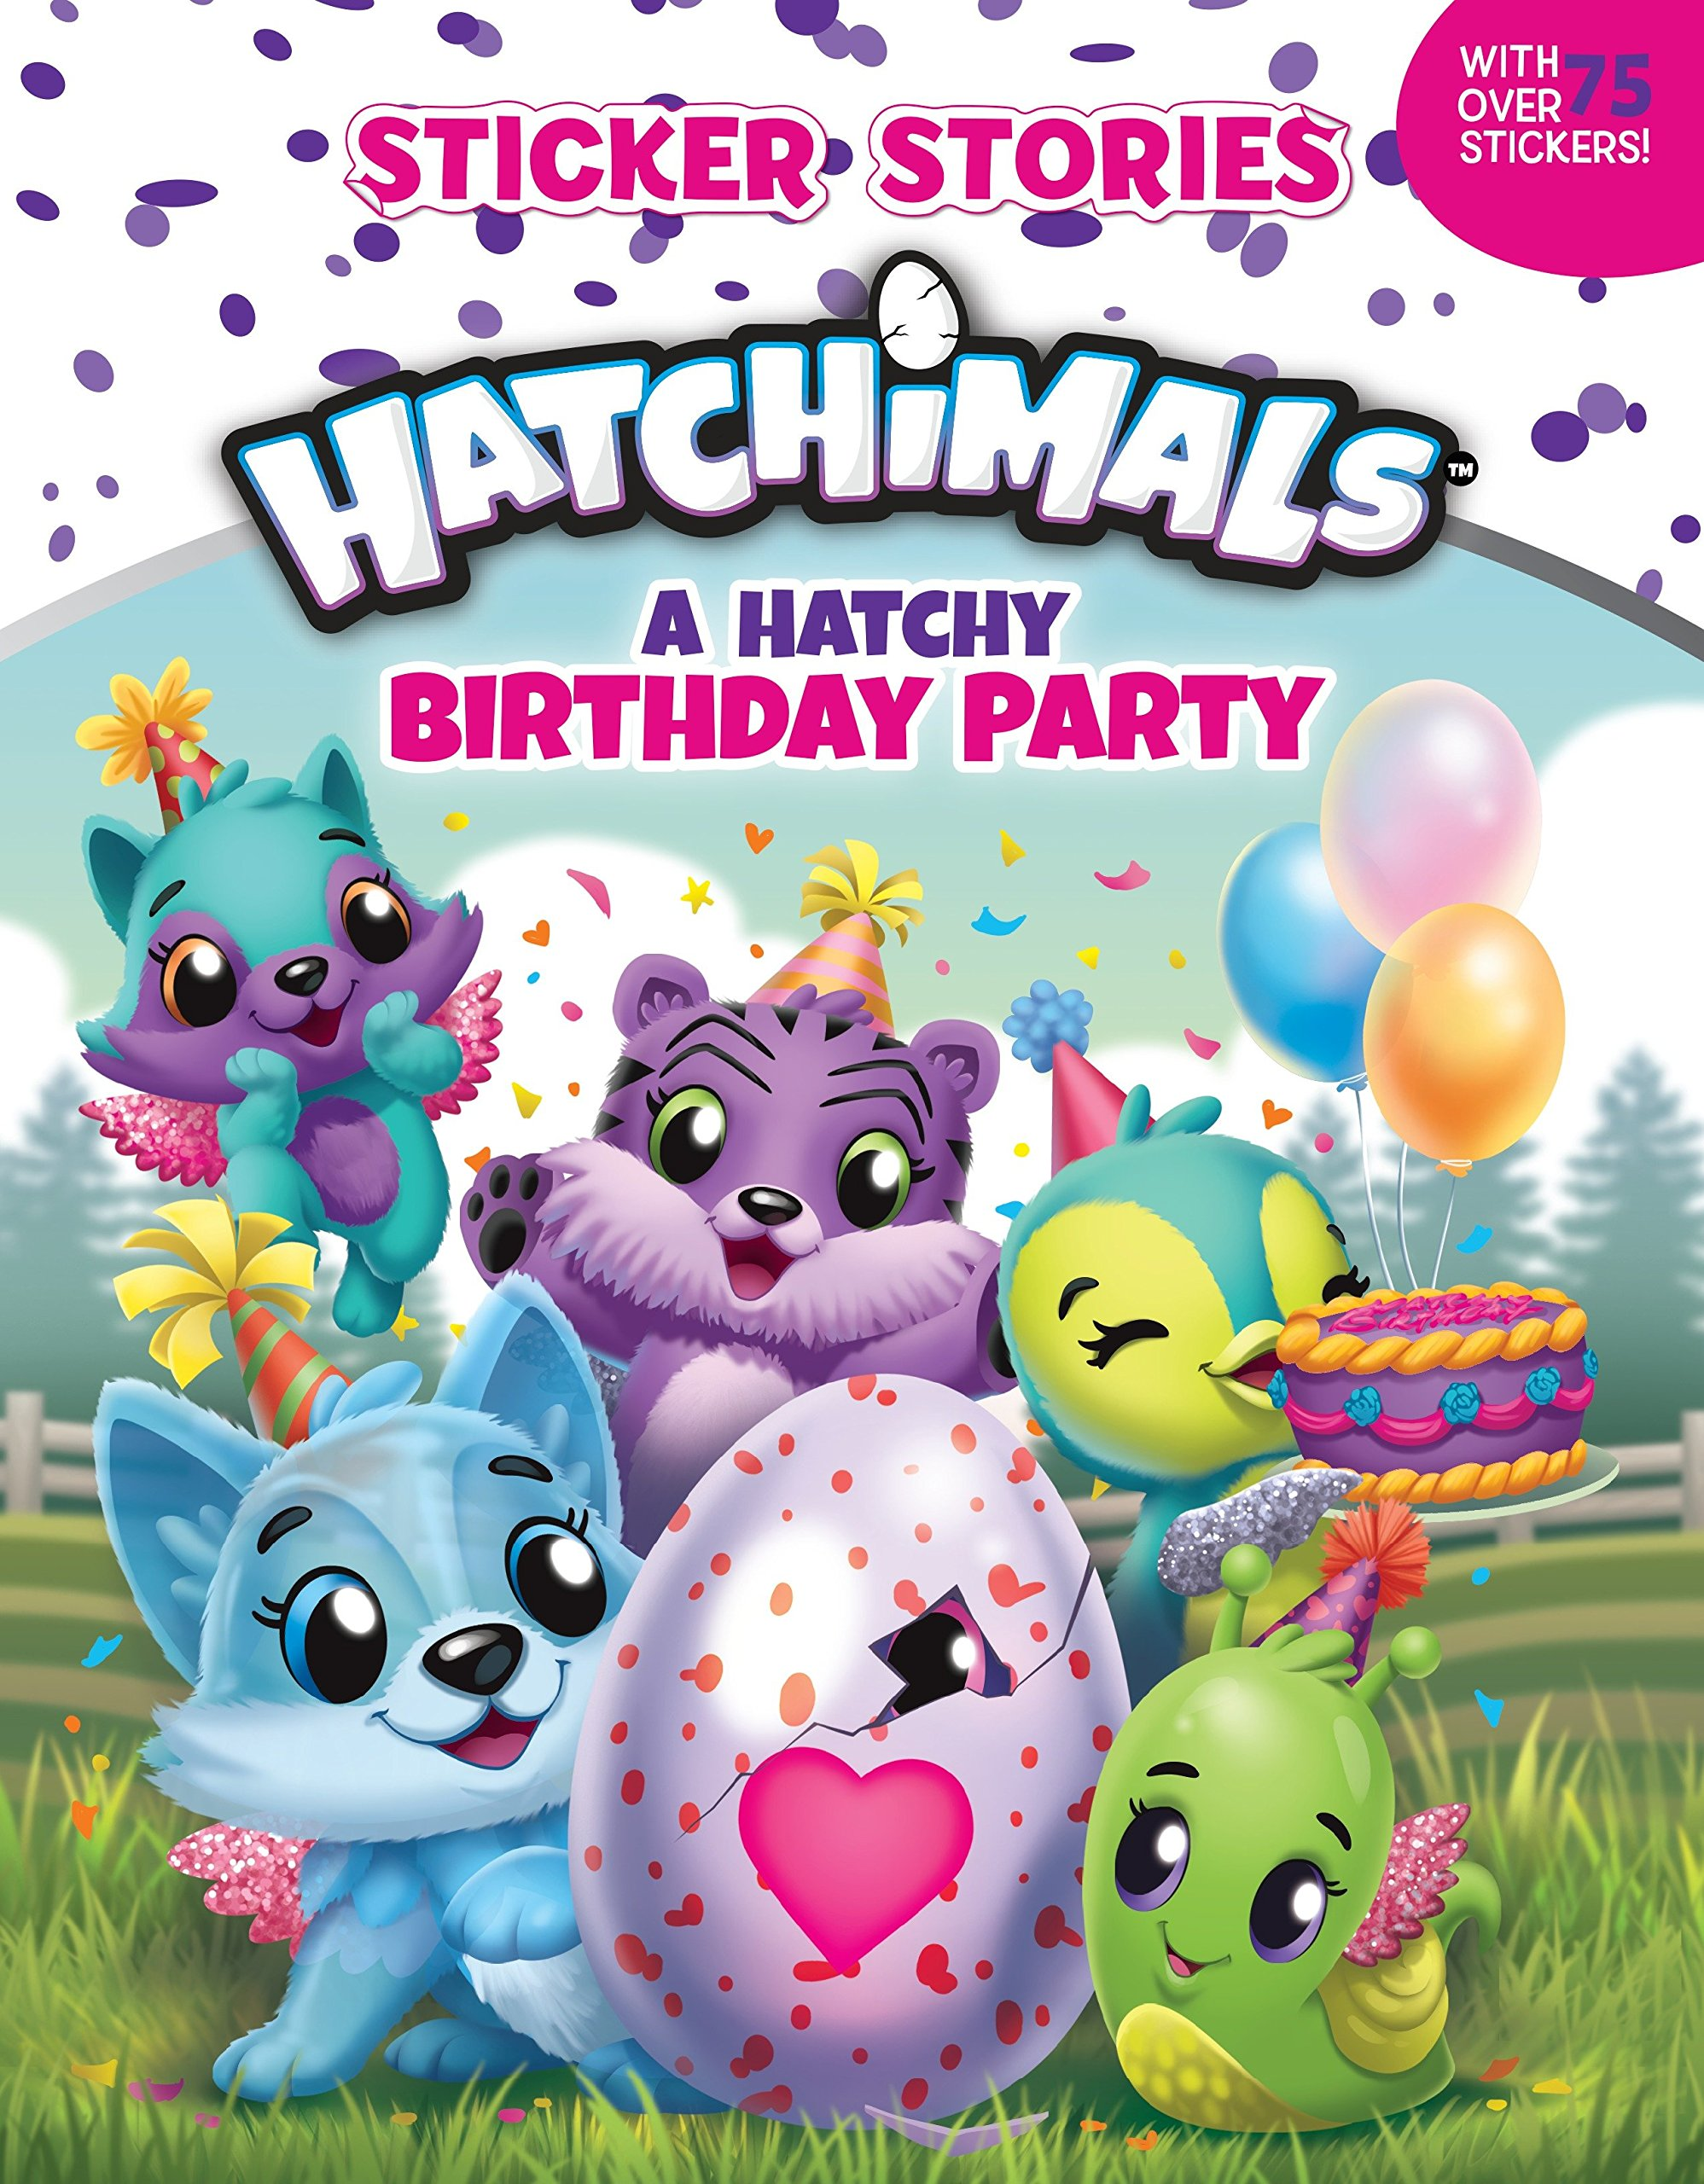 A Hatchy Birthday Party Sticker Stories Hatchimals Amazonde Penguin Young Readers Licenses Fremdsprachige Bucher